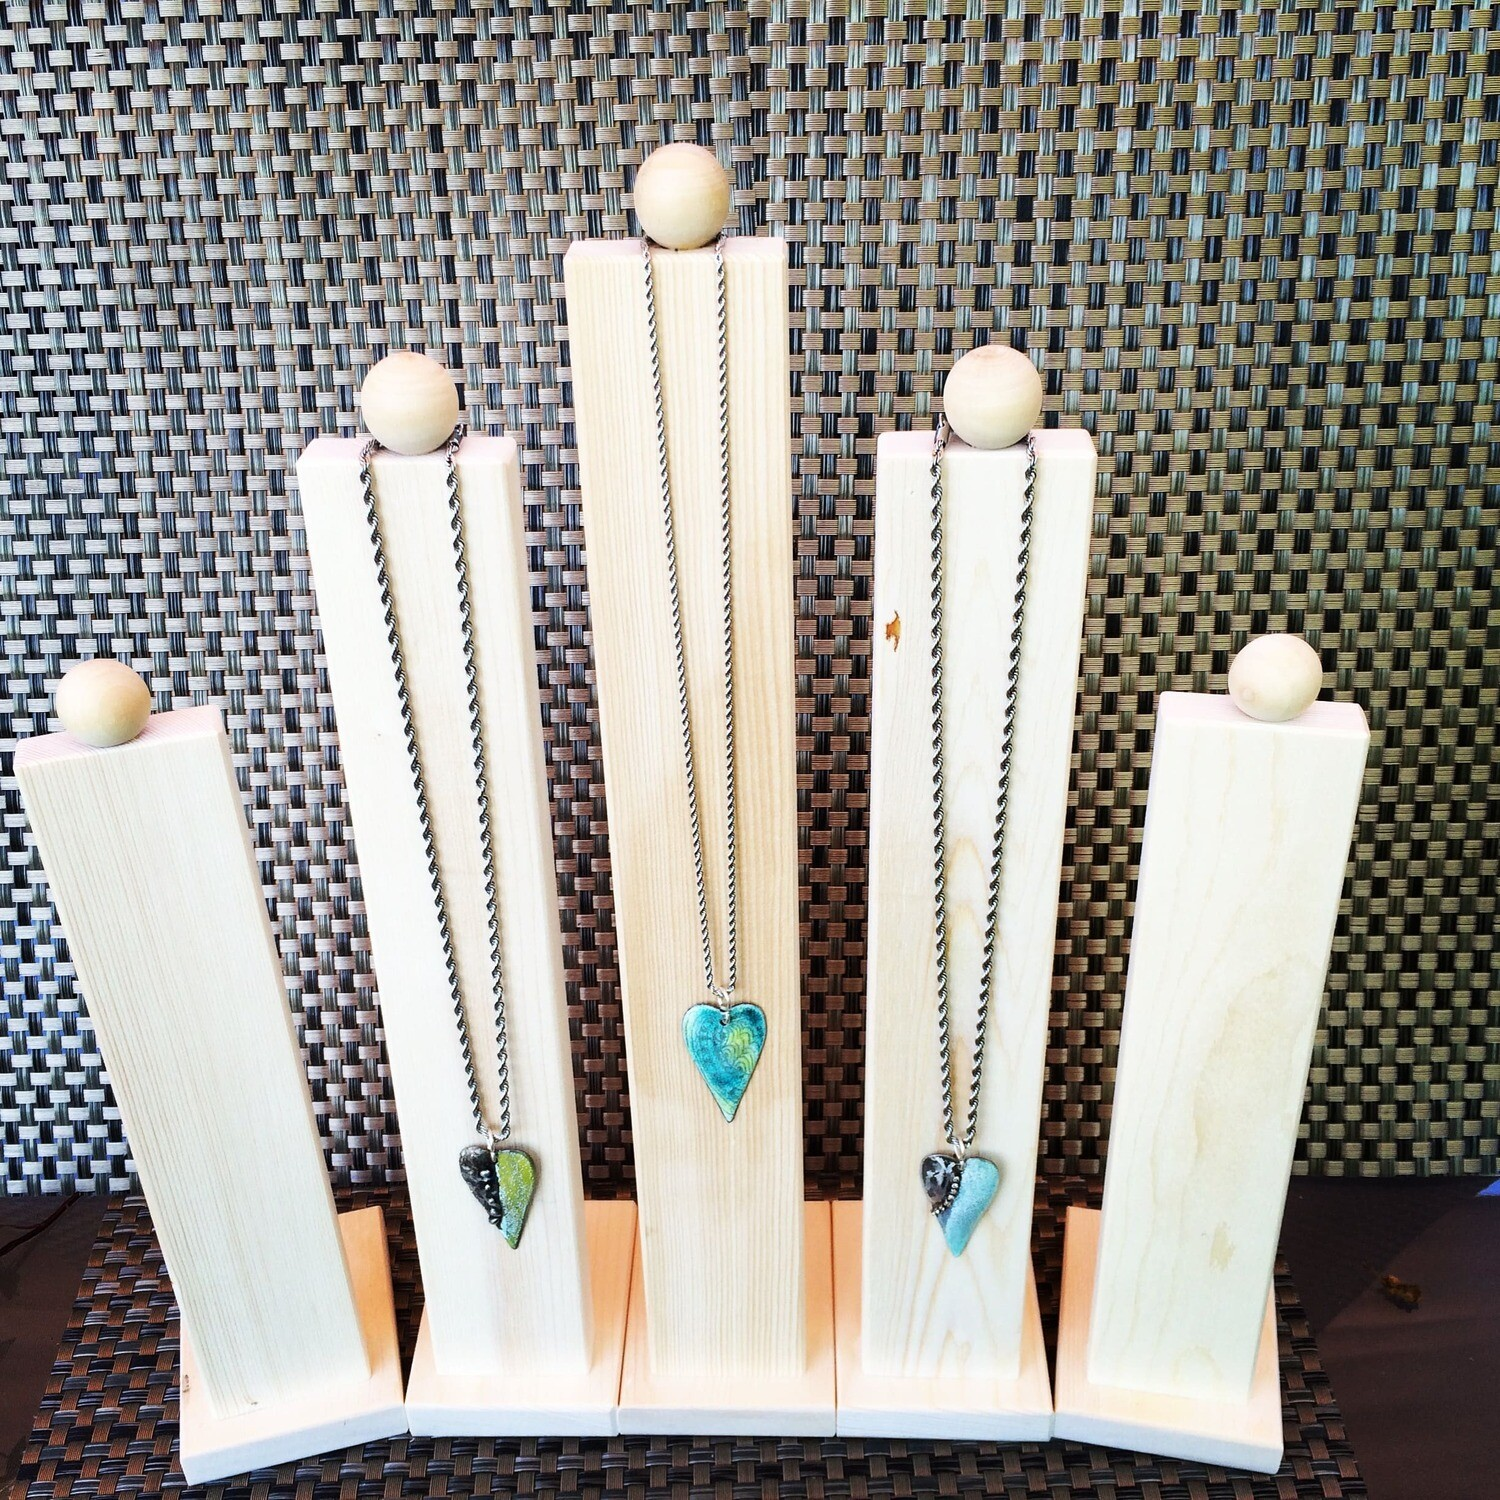 Display Stand, Wood Display, Jewelry Display, Necklace Display, Necklace Holder, Natural Wood Display, Minimalist Display, 12